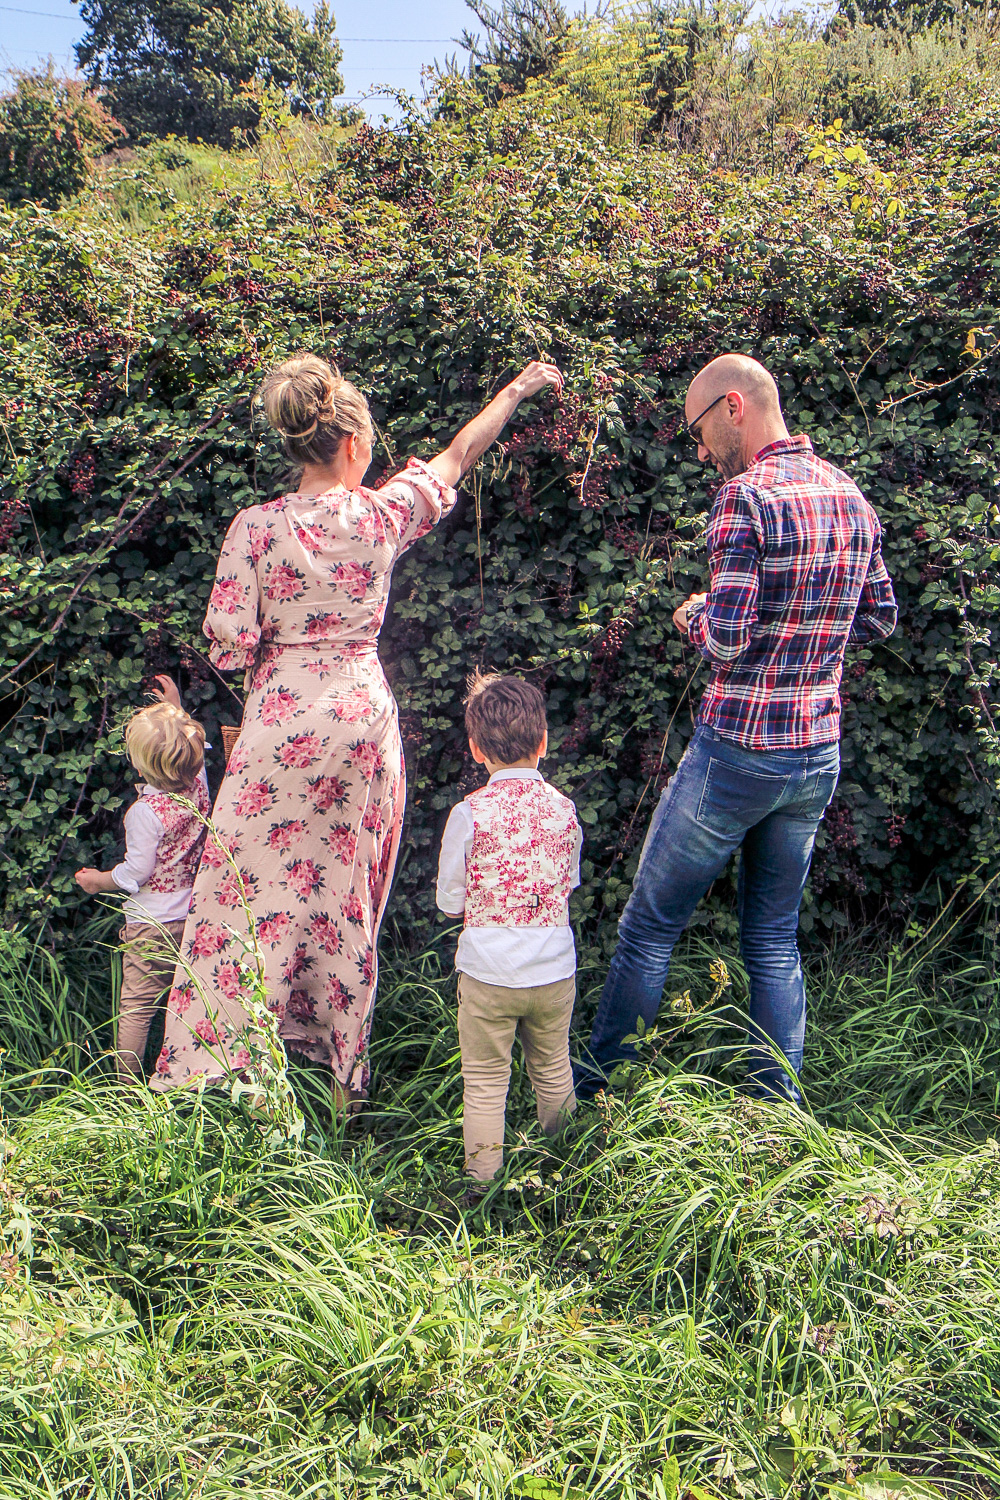 Family picking blackberries